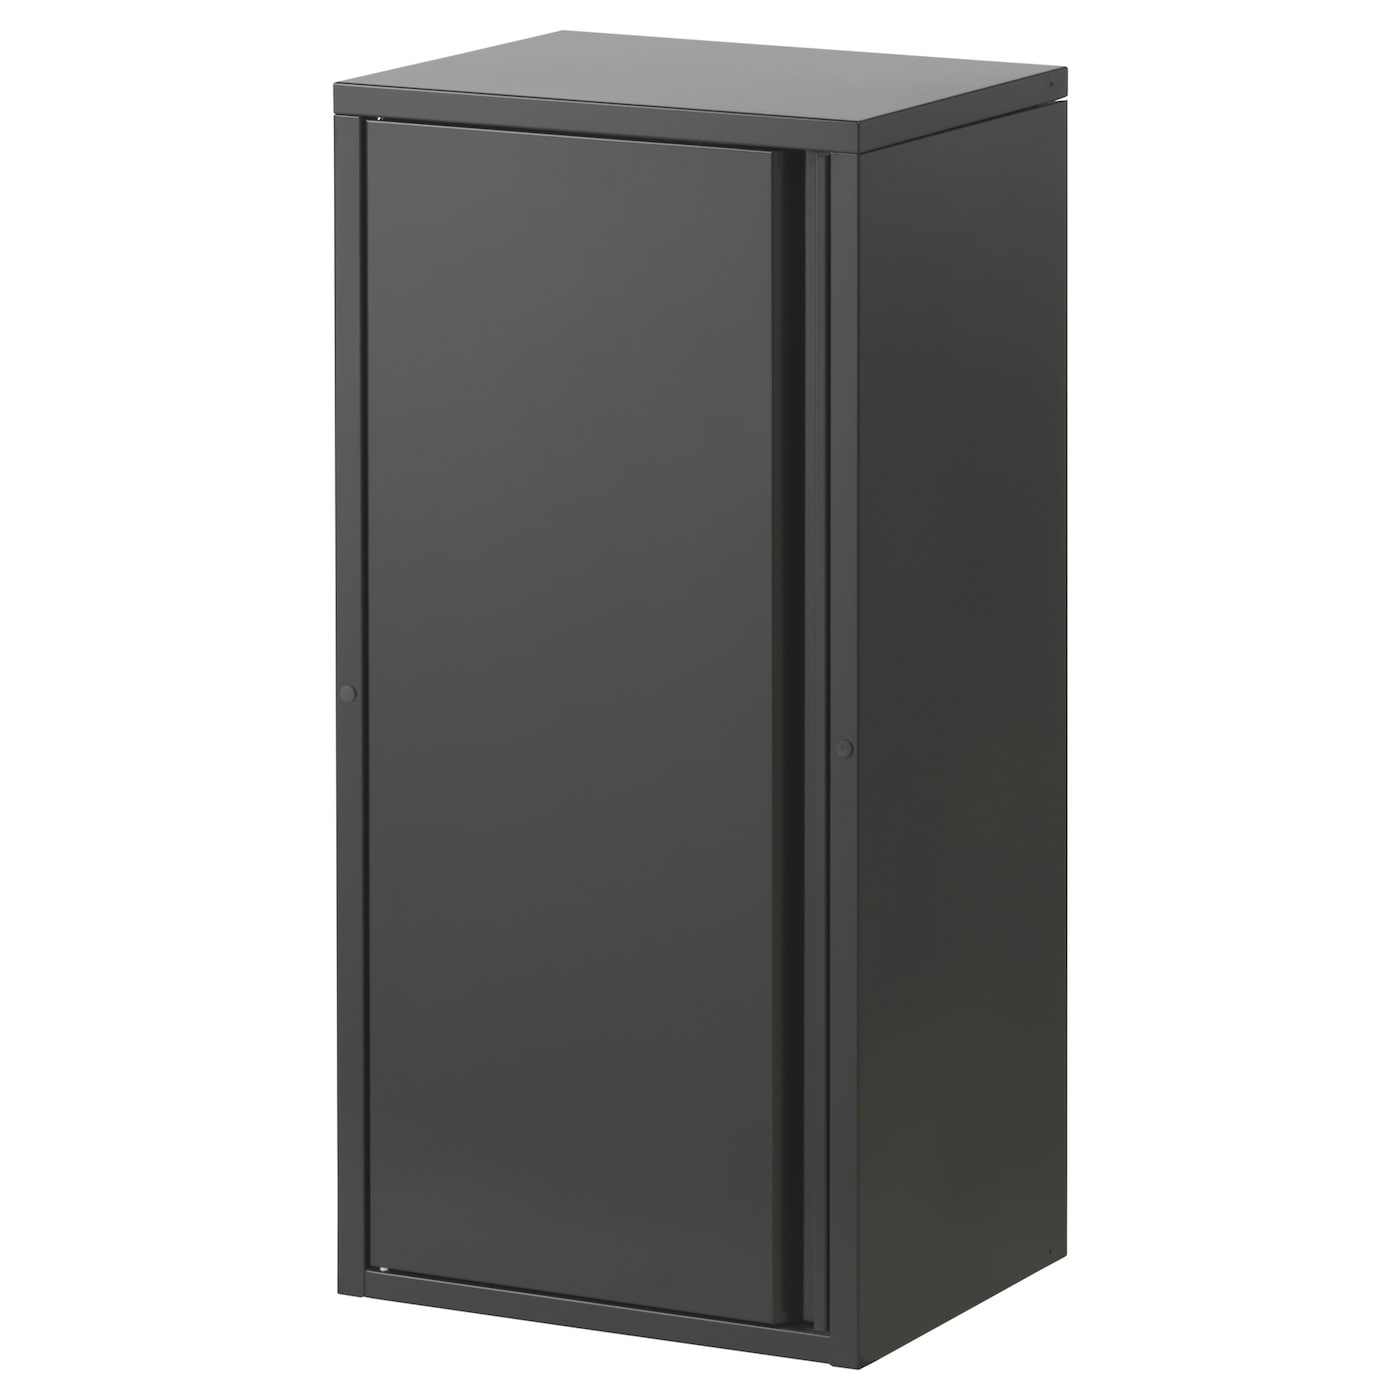 IKEA JOSEF cabinet in/outdoor Stackable  connection fittings included.